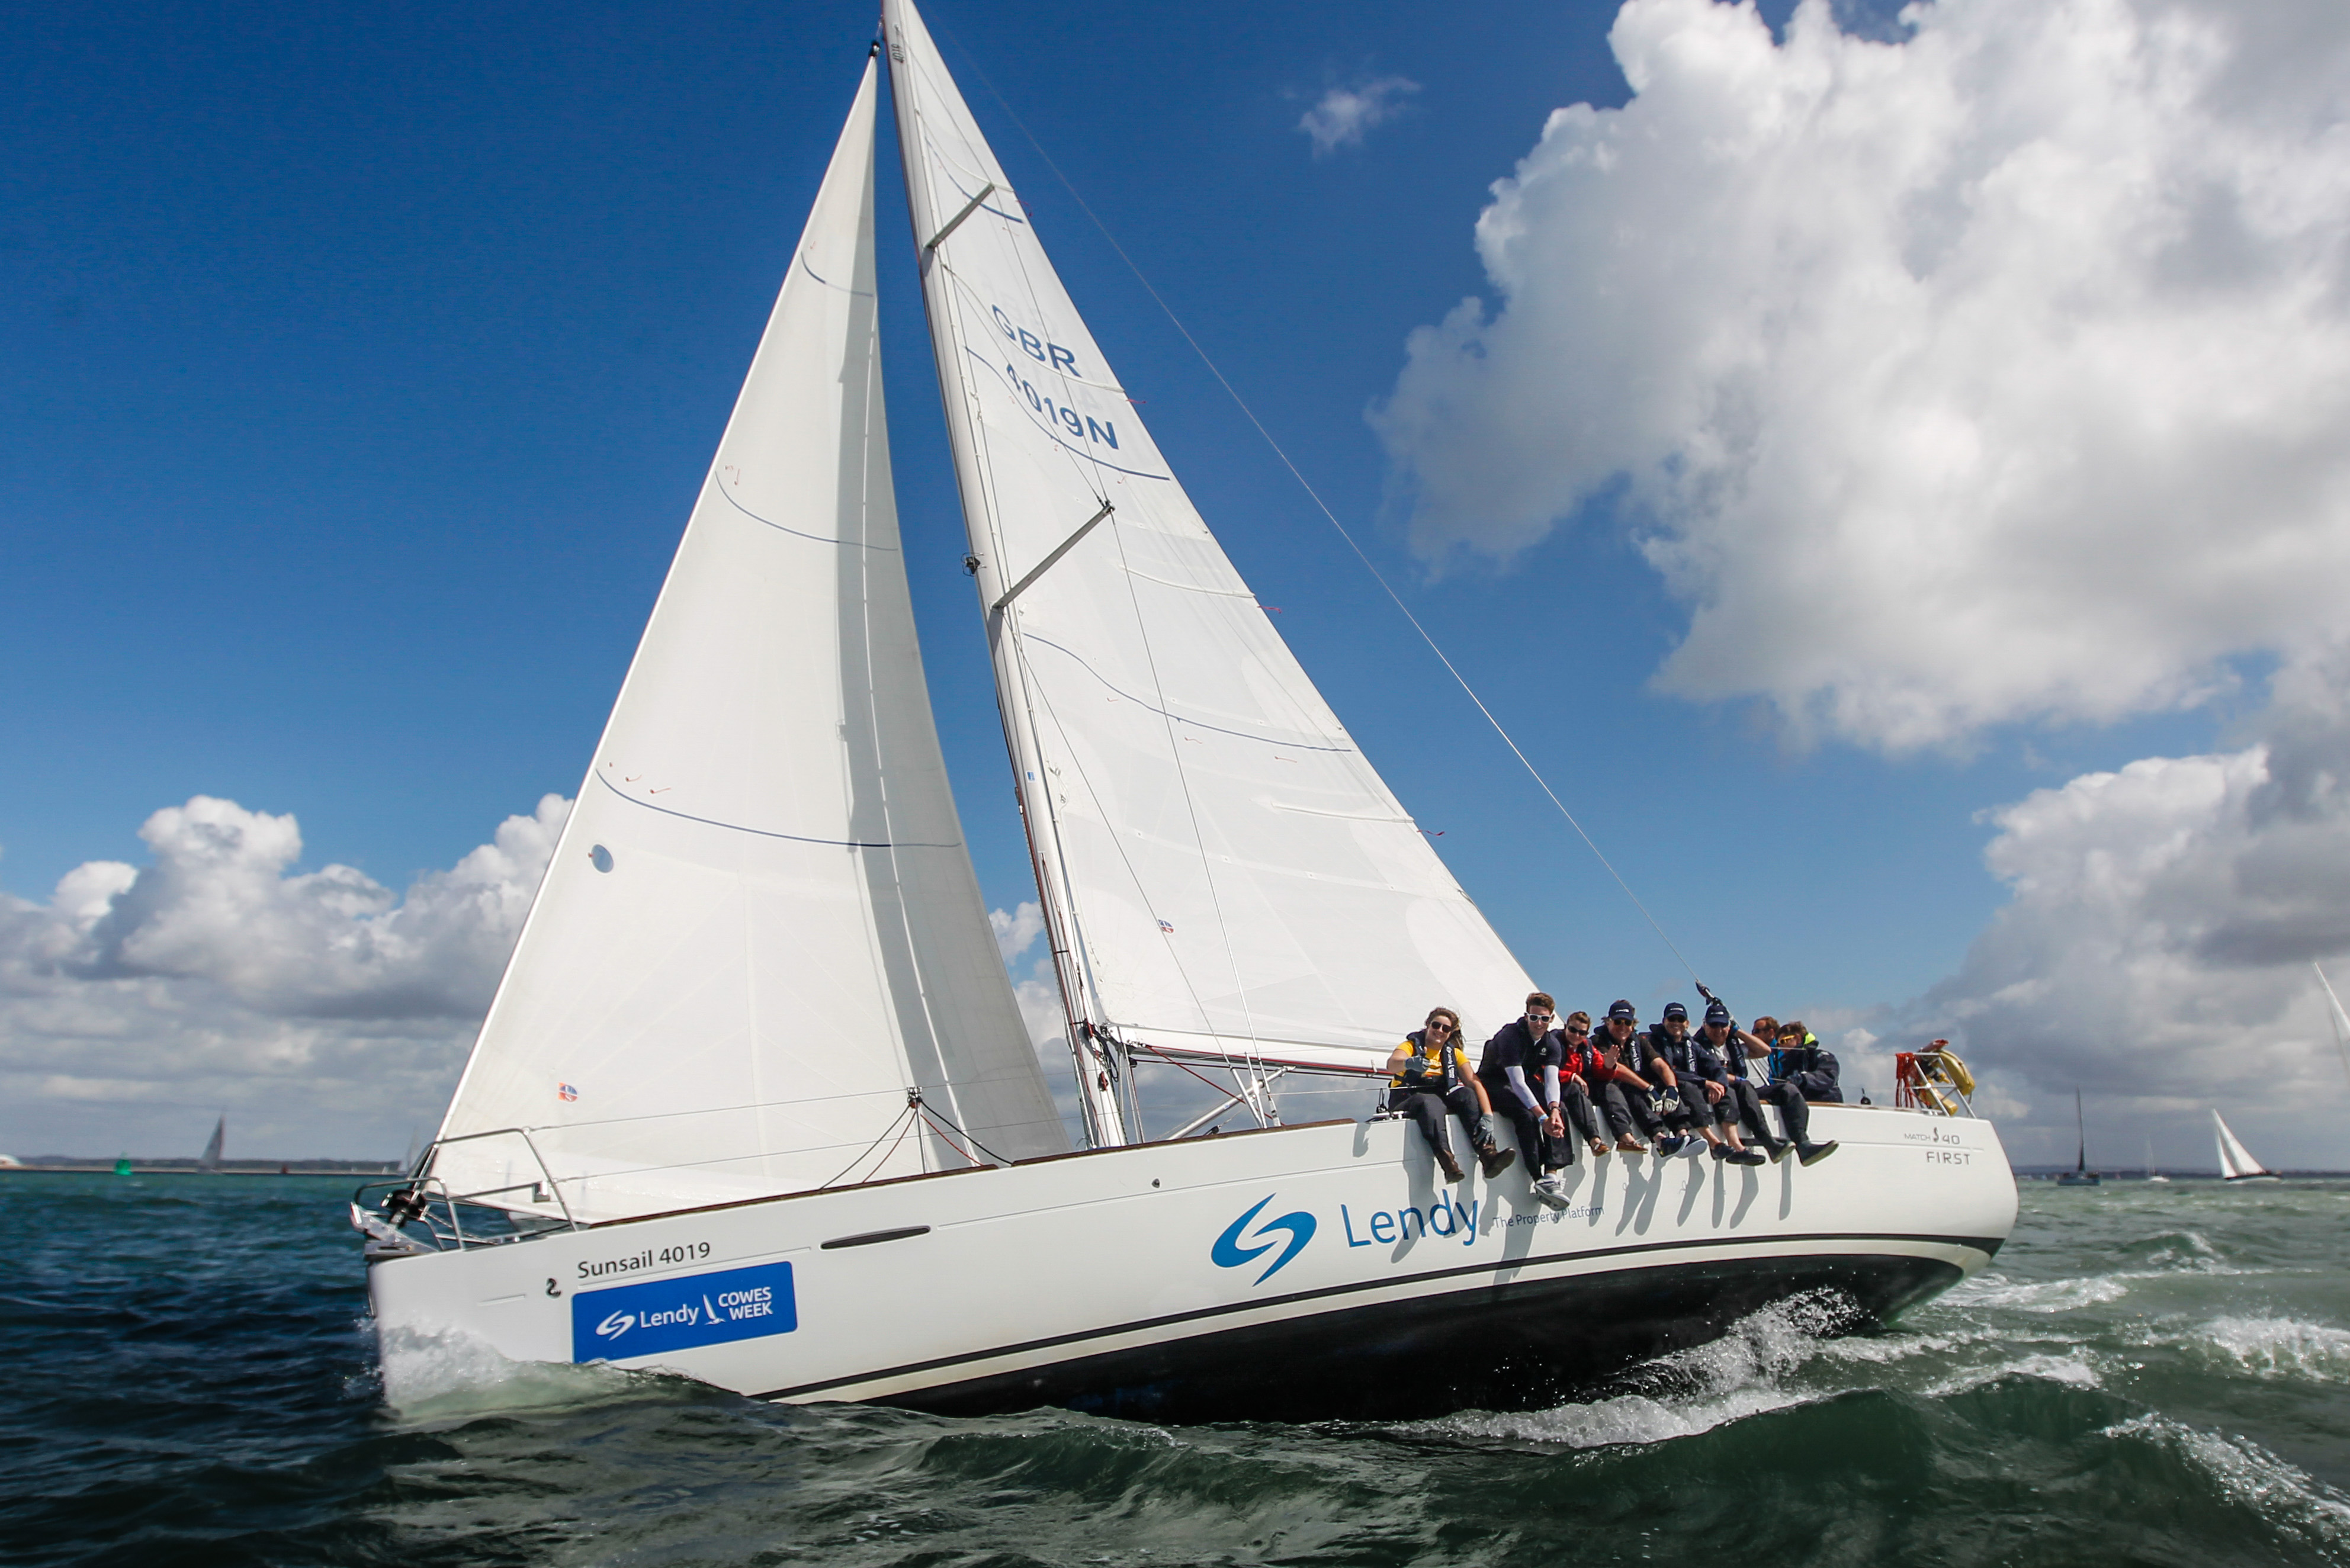 Sunsail at Lendy Cowes Week